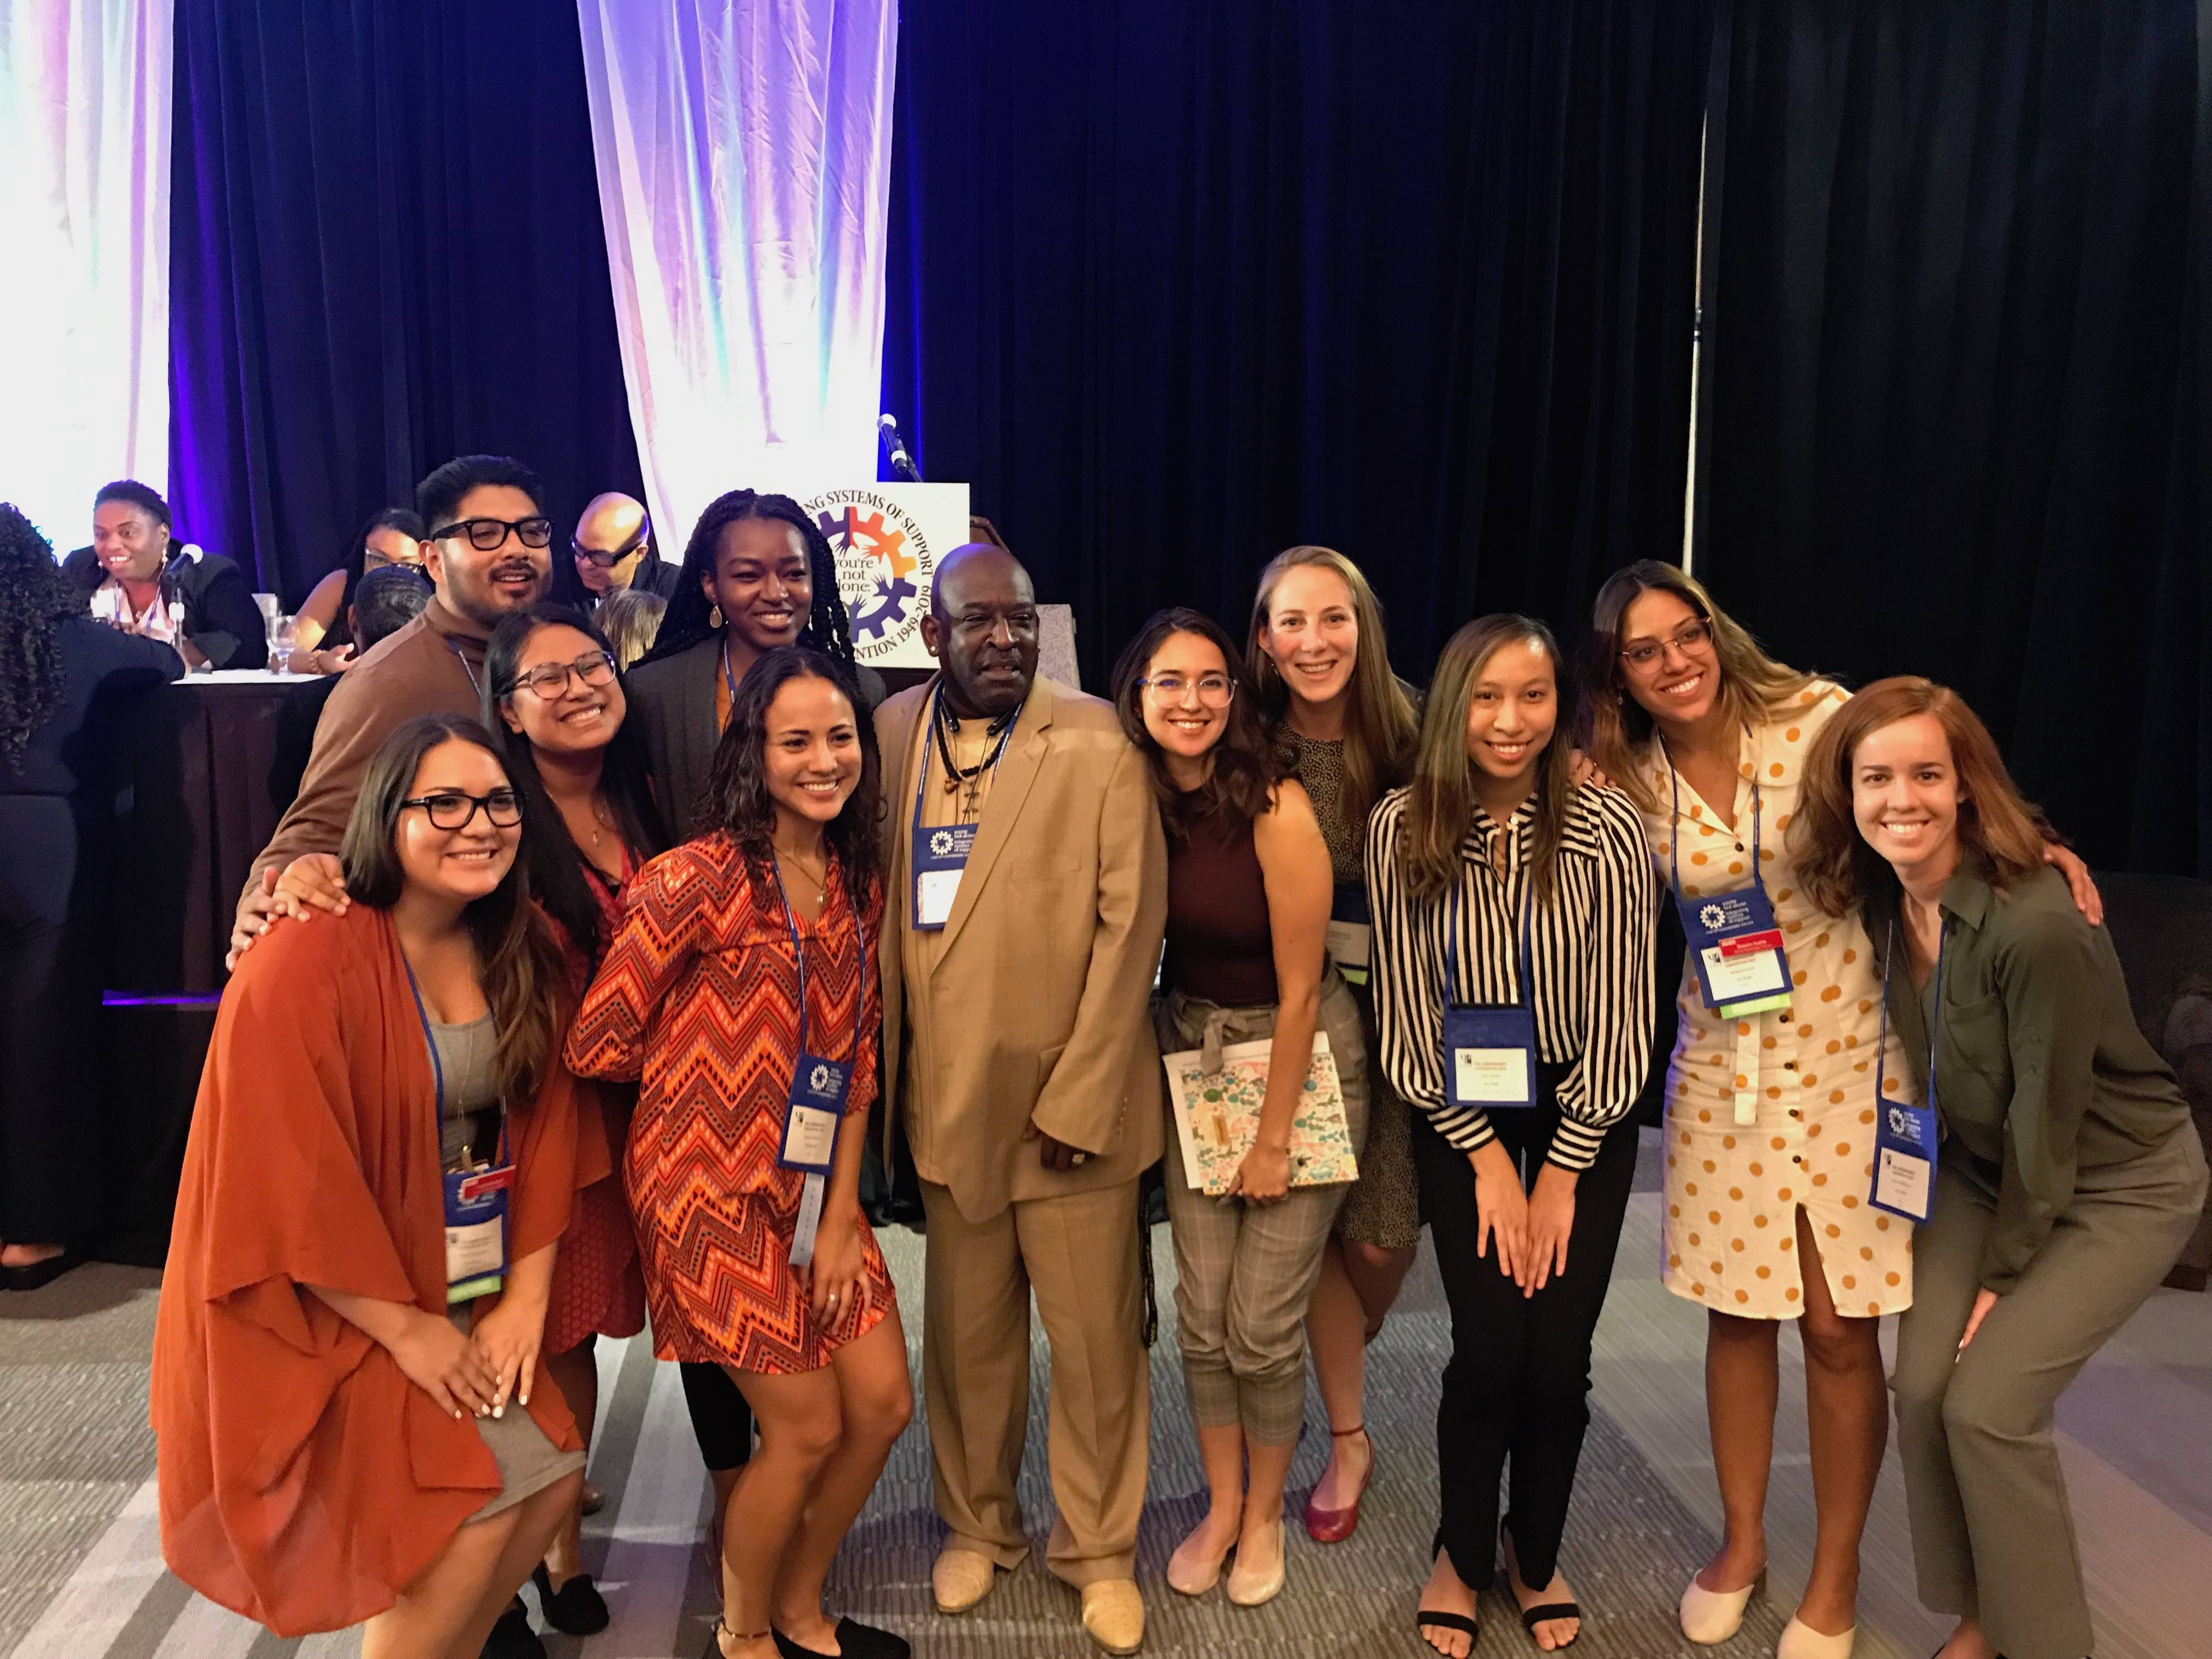 Students smiling with Darryl, the student who was at the center of the Larry P. court case, at the 2019 CASP convention in Long Beach, California.